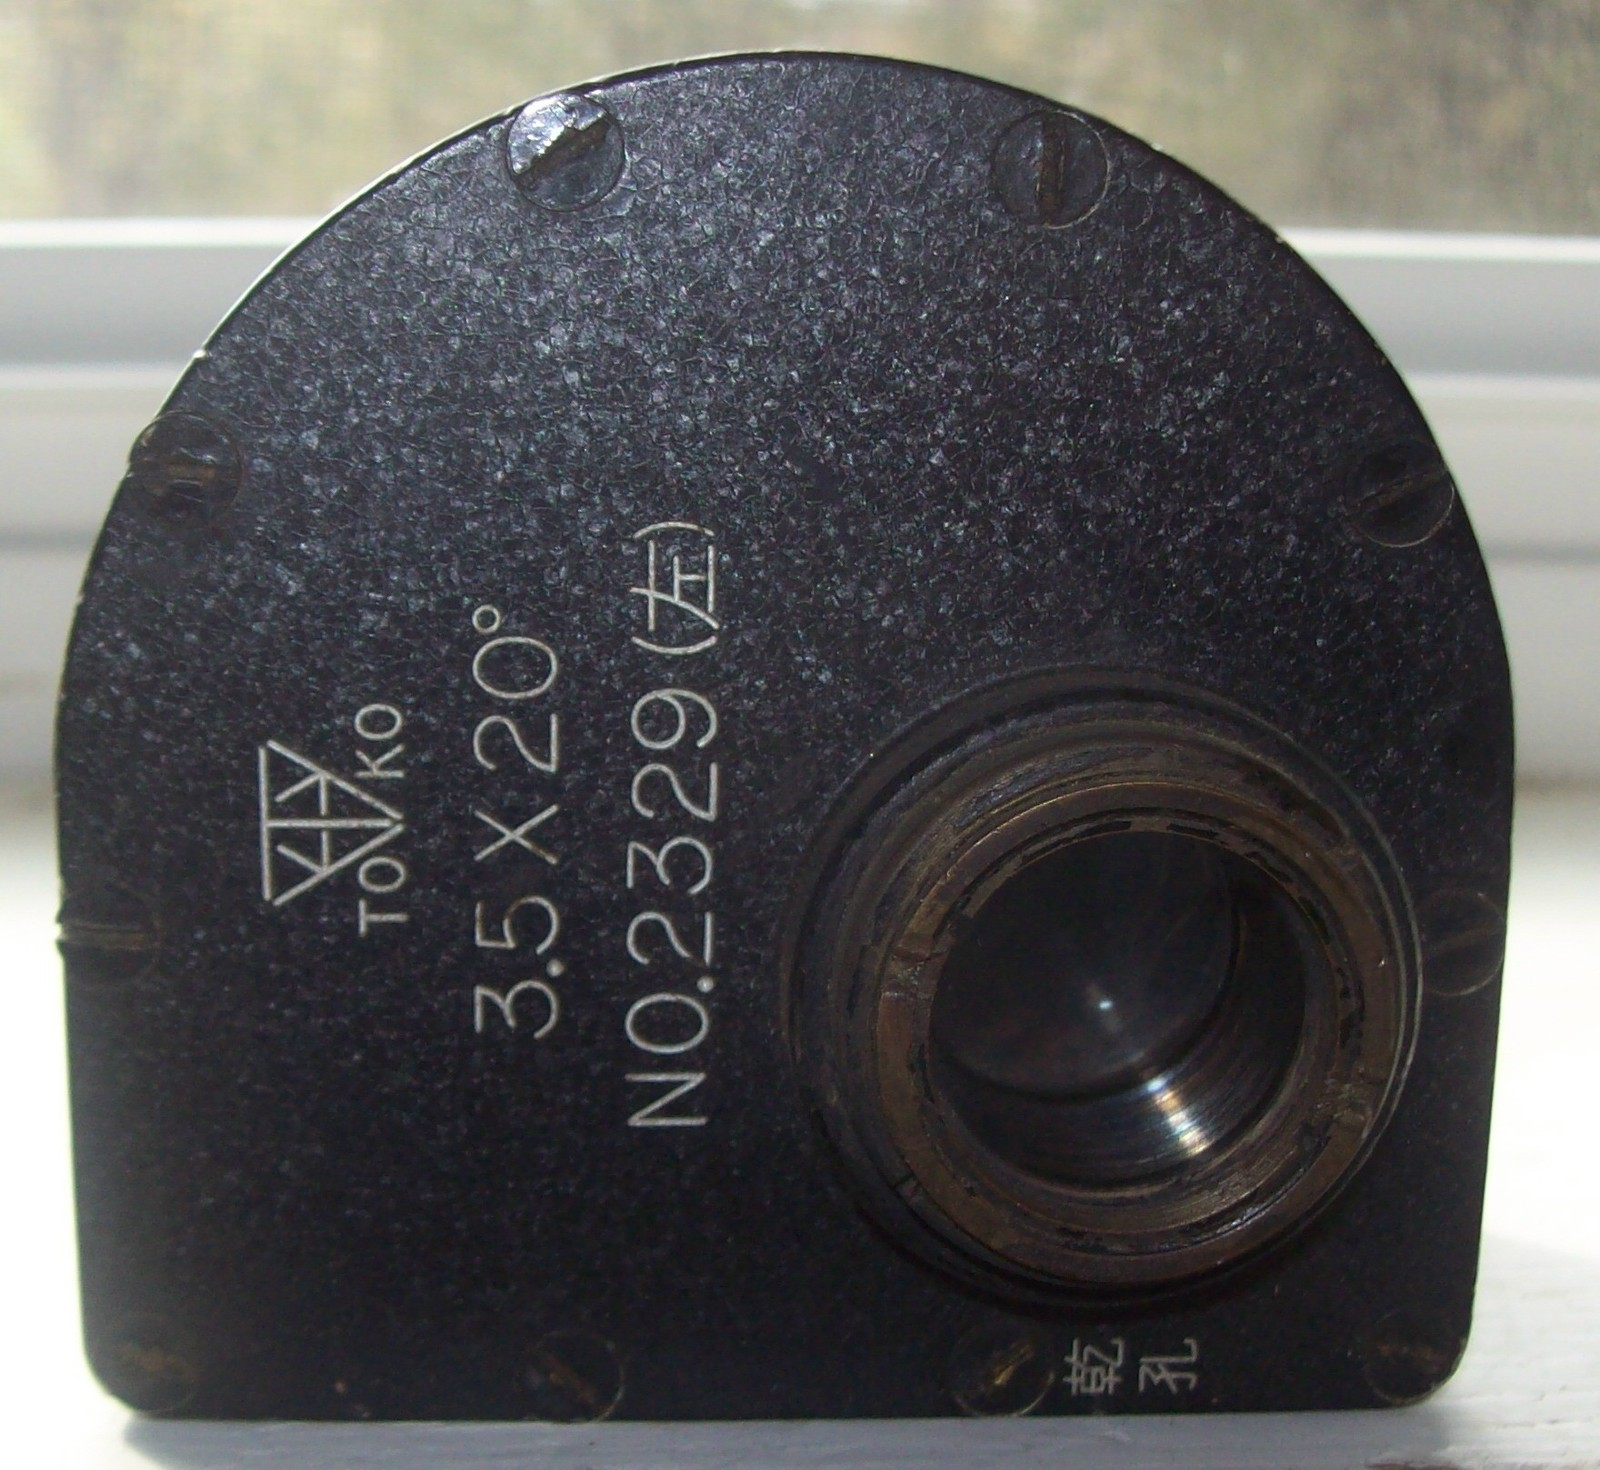 WW2 JAPANESE OPTICAL ARTILLERY GUN SIGHT